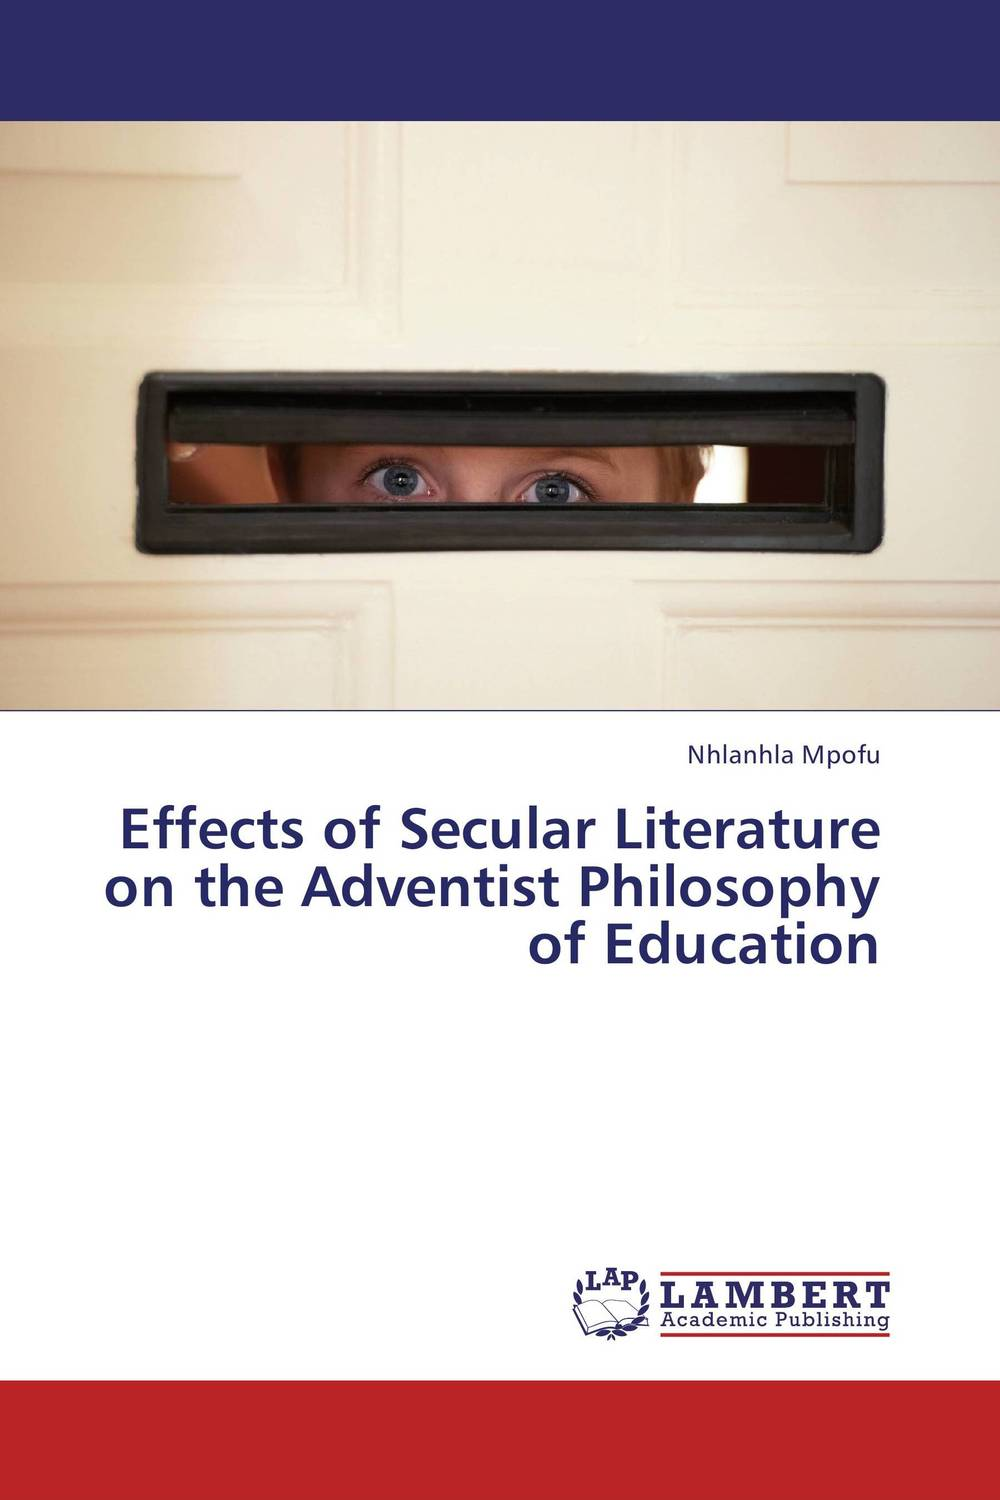 Effects of Secular Literature on the Adventist Philosophy of Education peace education at the national university of rwanda